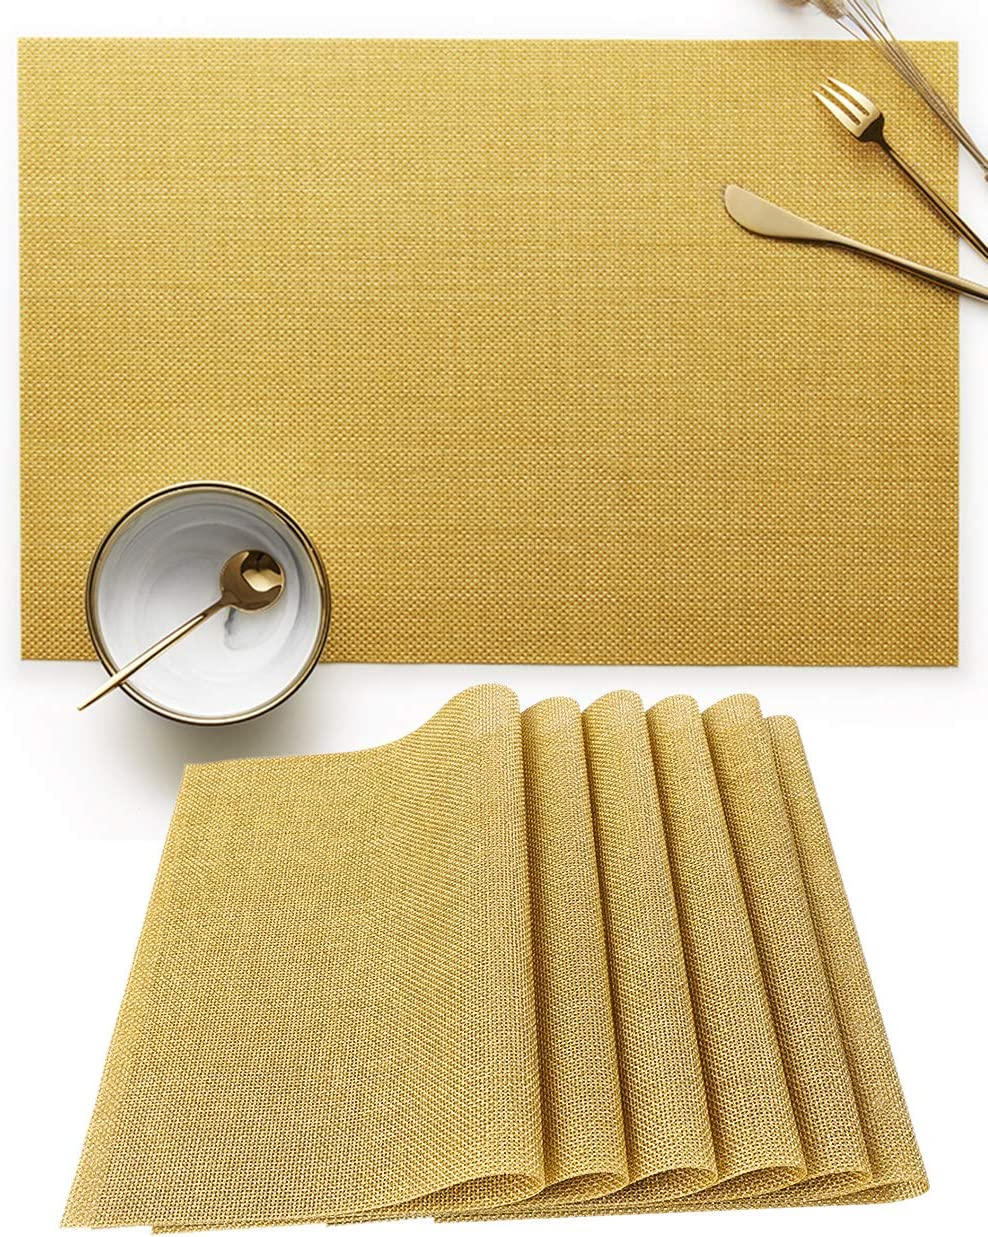 YouthGo Placemats Washable Dining Table Place Mats PVC Set 6 wholesale Mesa Mall of